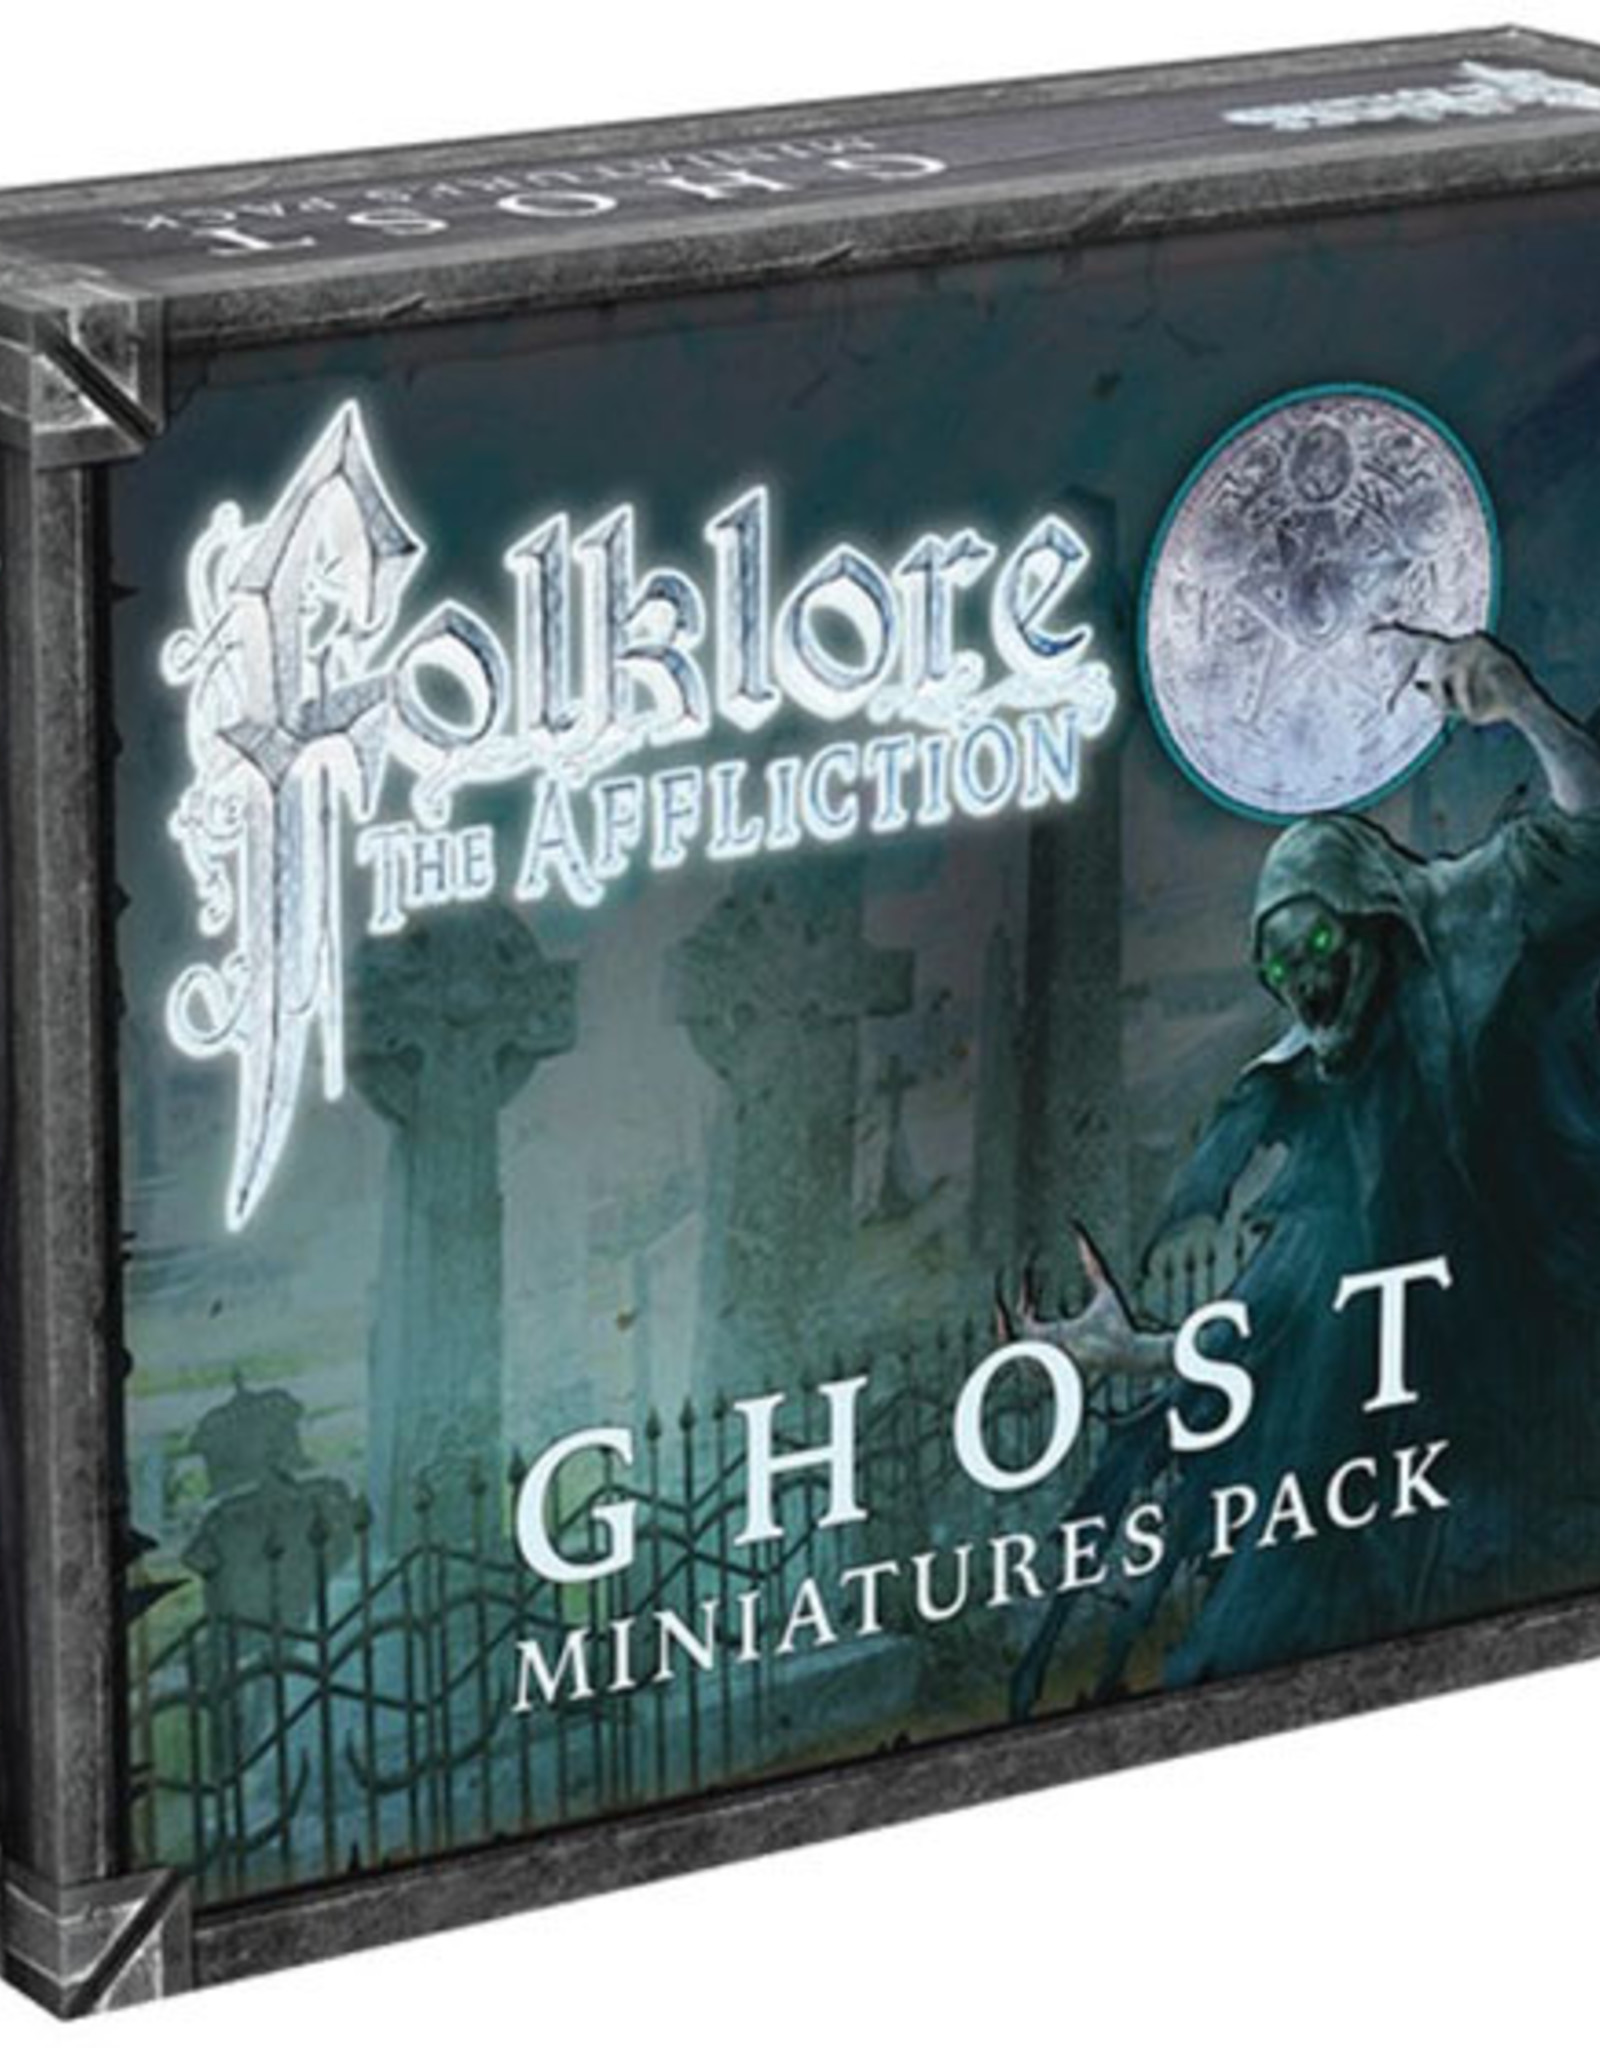 Folklore Ghost Miniature Pack